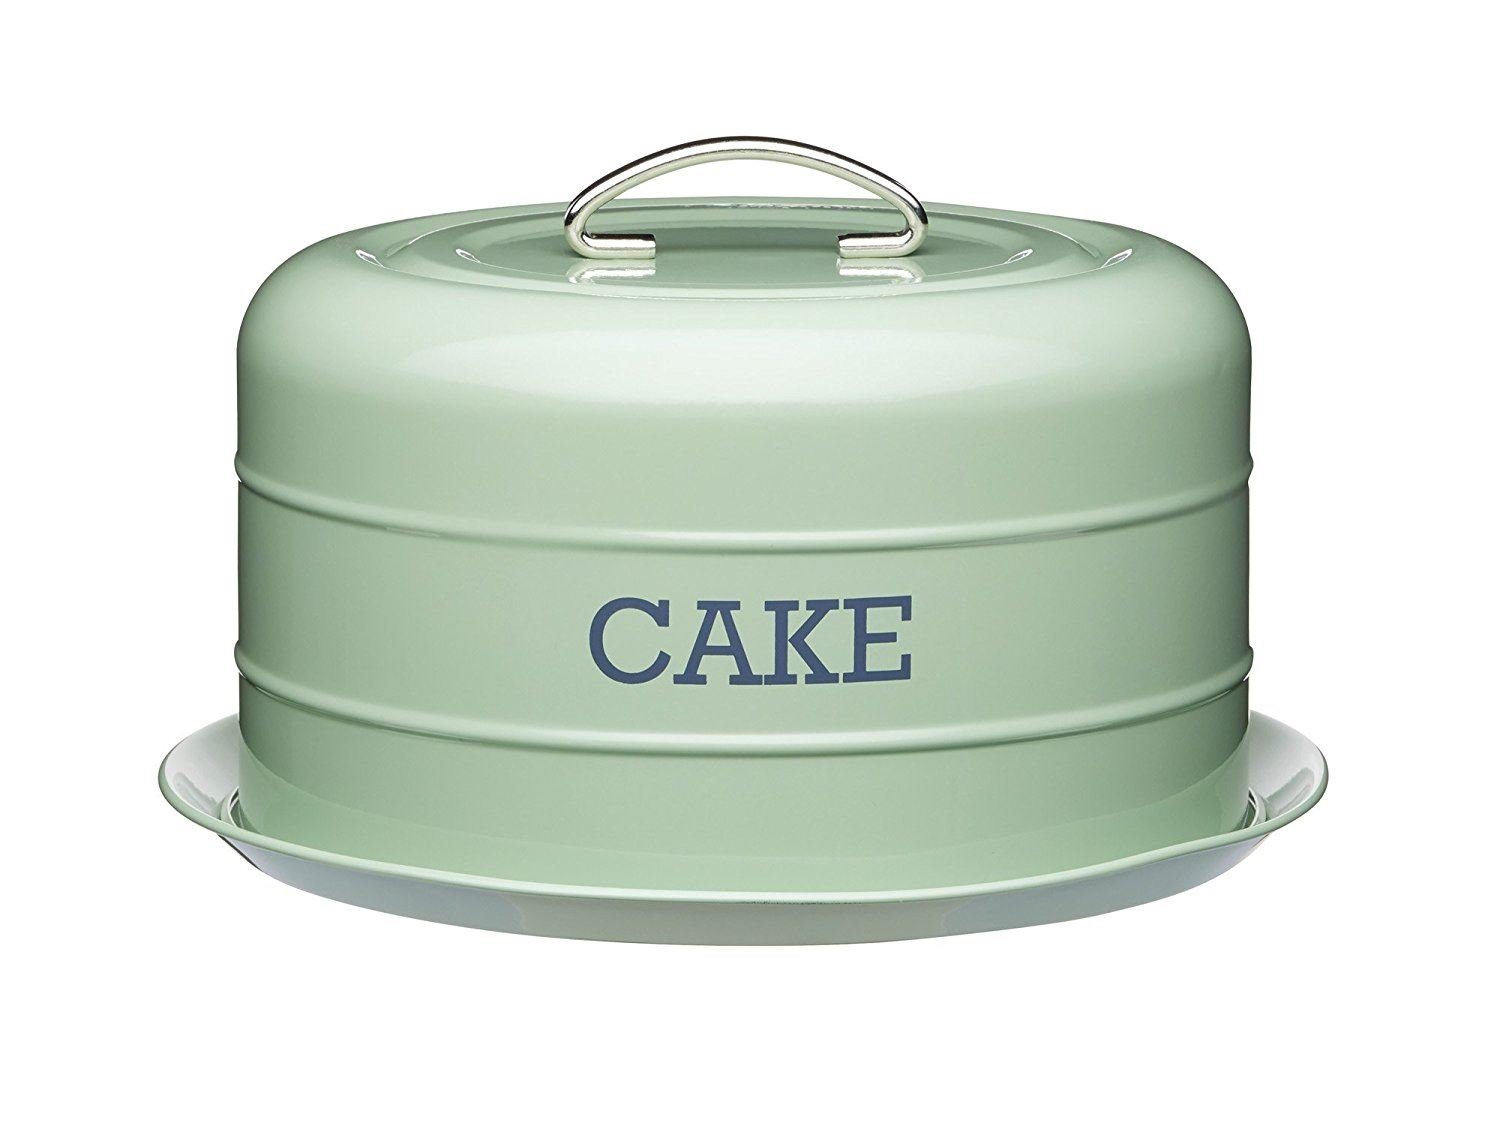 Kitchen Craft Living Nostalgia Vintage Style Airtight Cake Storage Tin Cake Dome English Sage Green - 28.5cm x 18cm 11'' x 7''